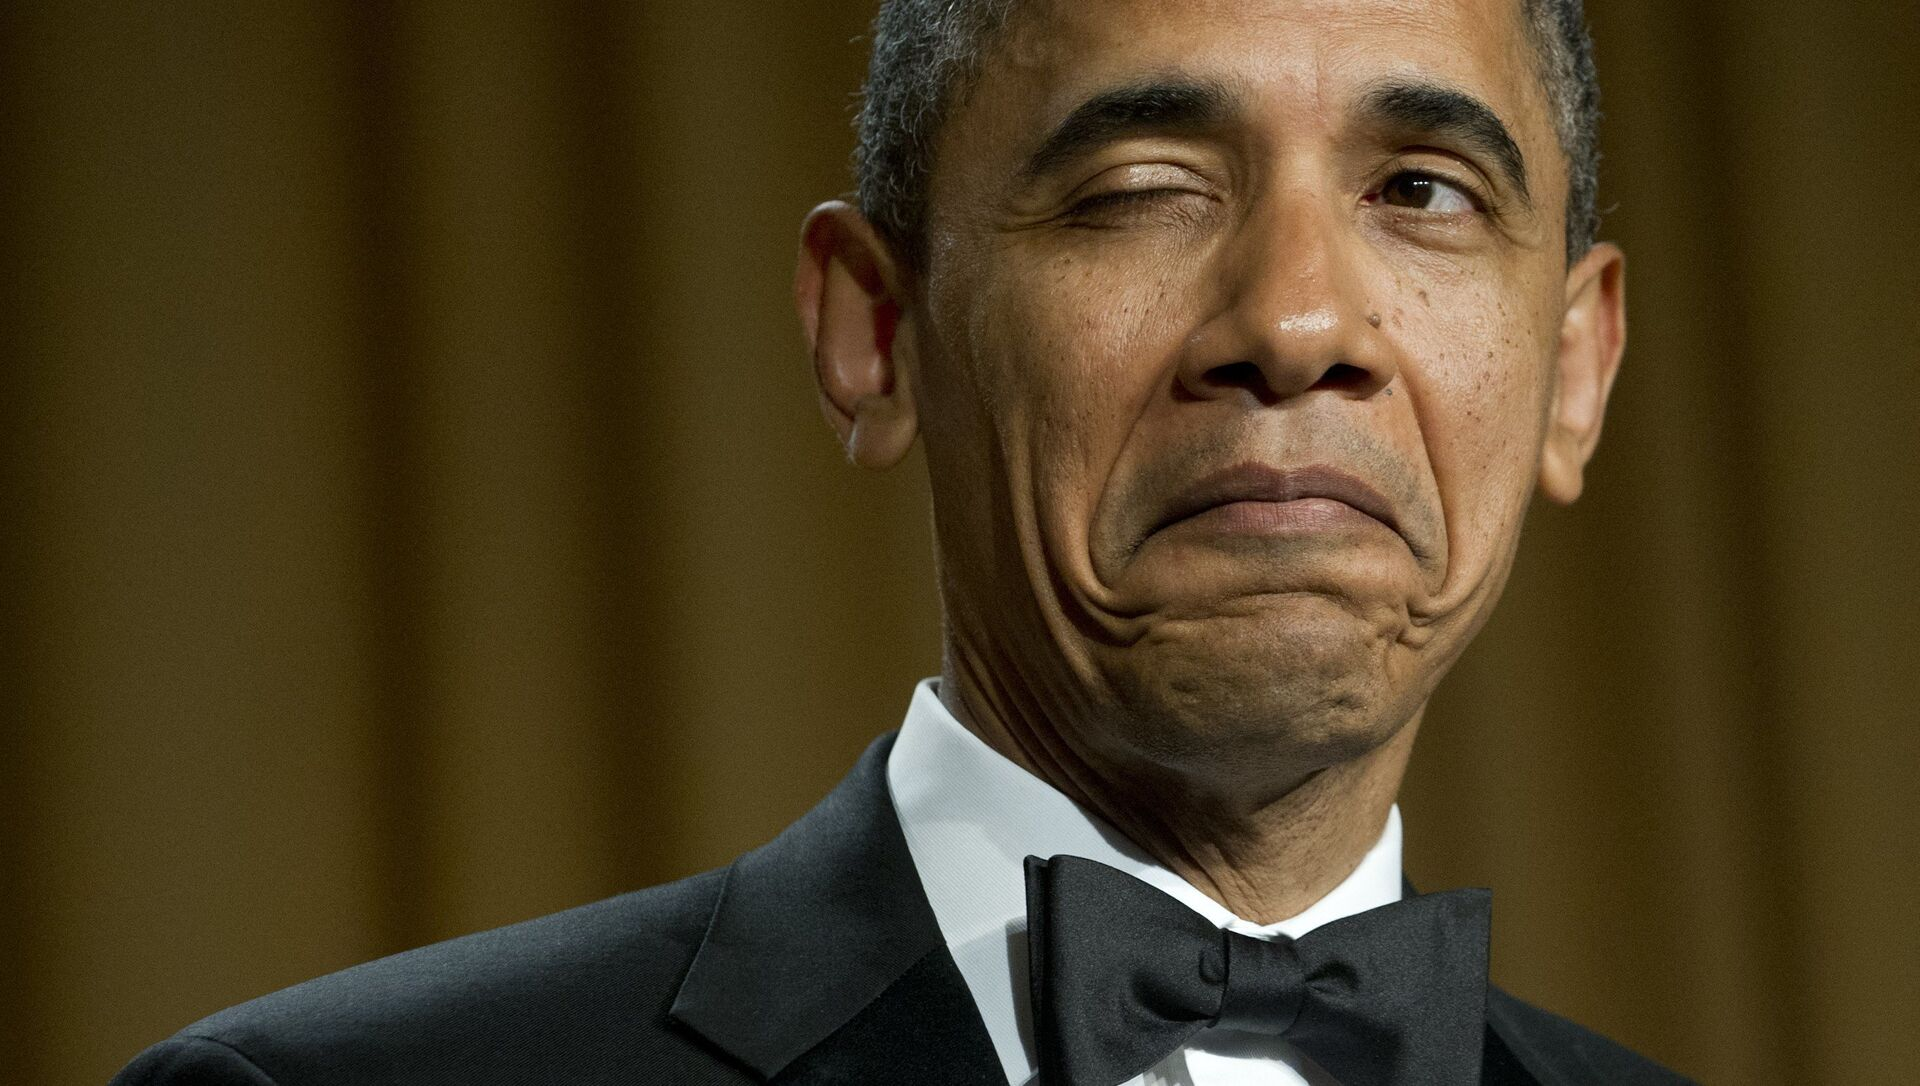 US President Barack Obama winks as he tells a joke about his place of birth during the White House Correspondents Association Dinner in Washington, DC, April 28, 2012. The annual event, which brings together US President Barack Obama, Hollywood celebrities, news media personalities and Washington correspondents, features comedian Jimmy Kimmel as the host.  - Sputnik International, 1920, 02.08.2021